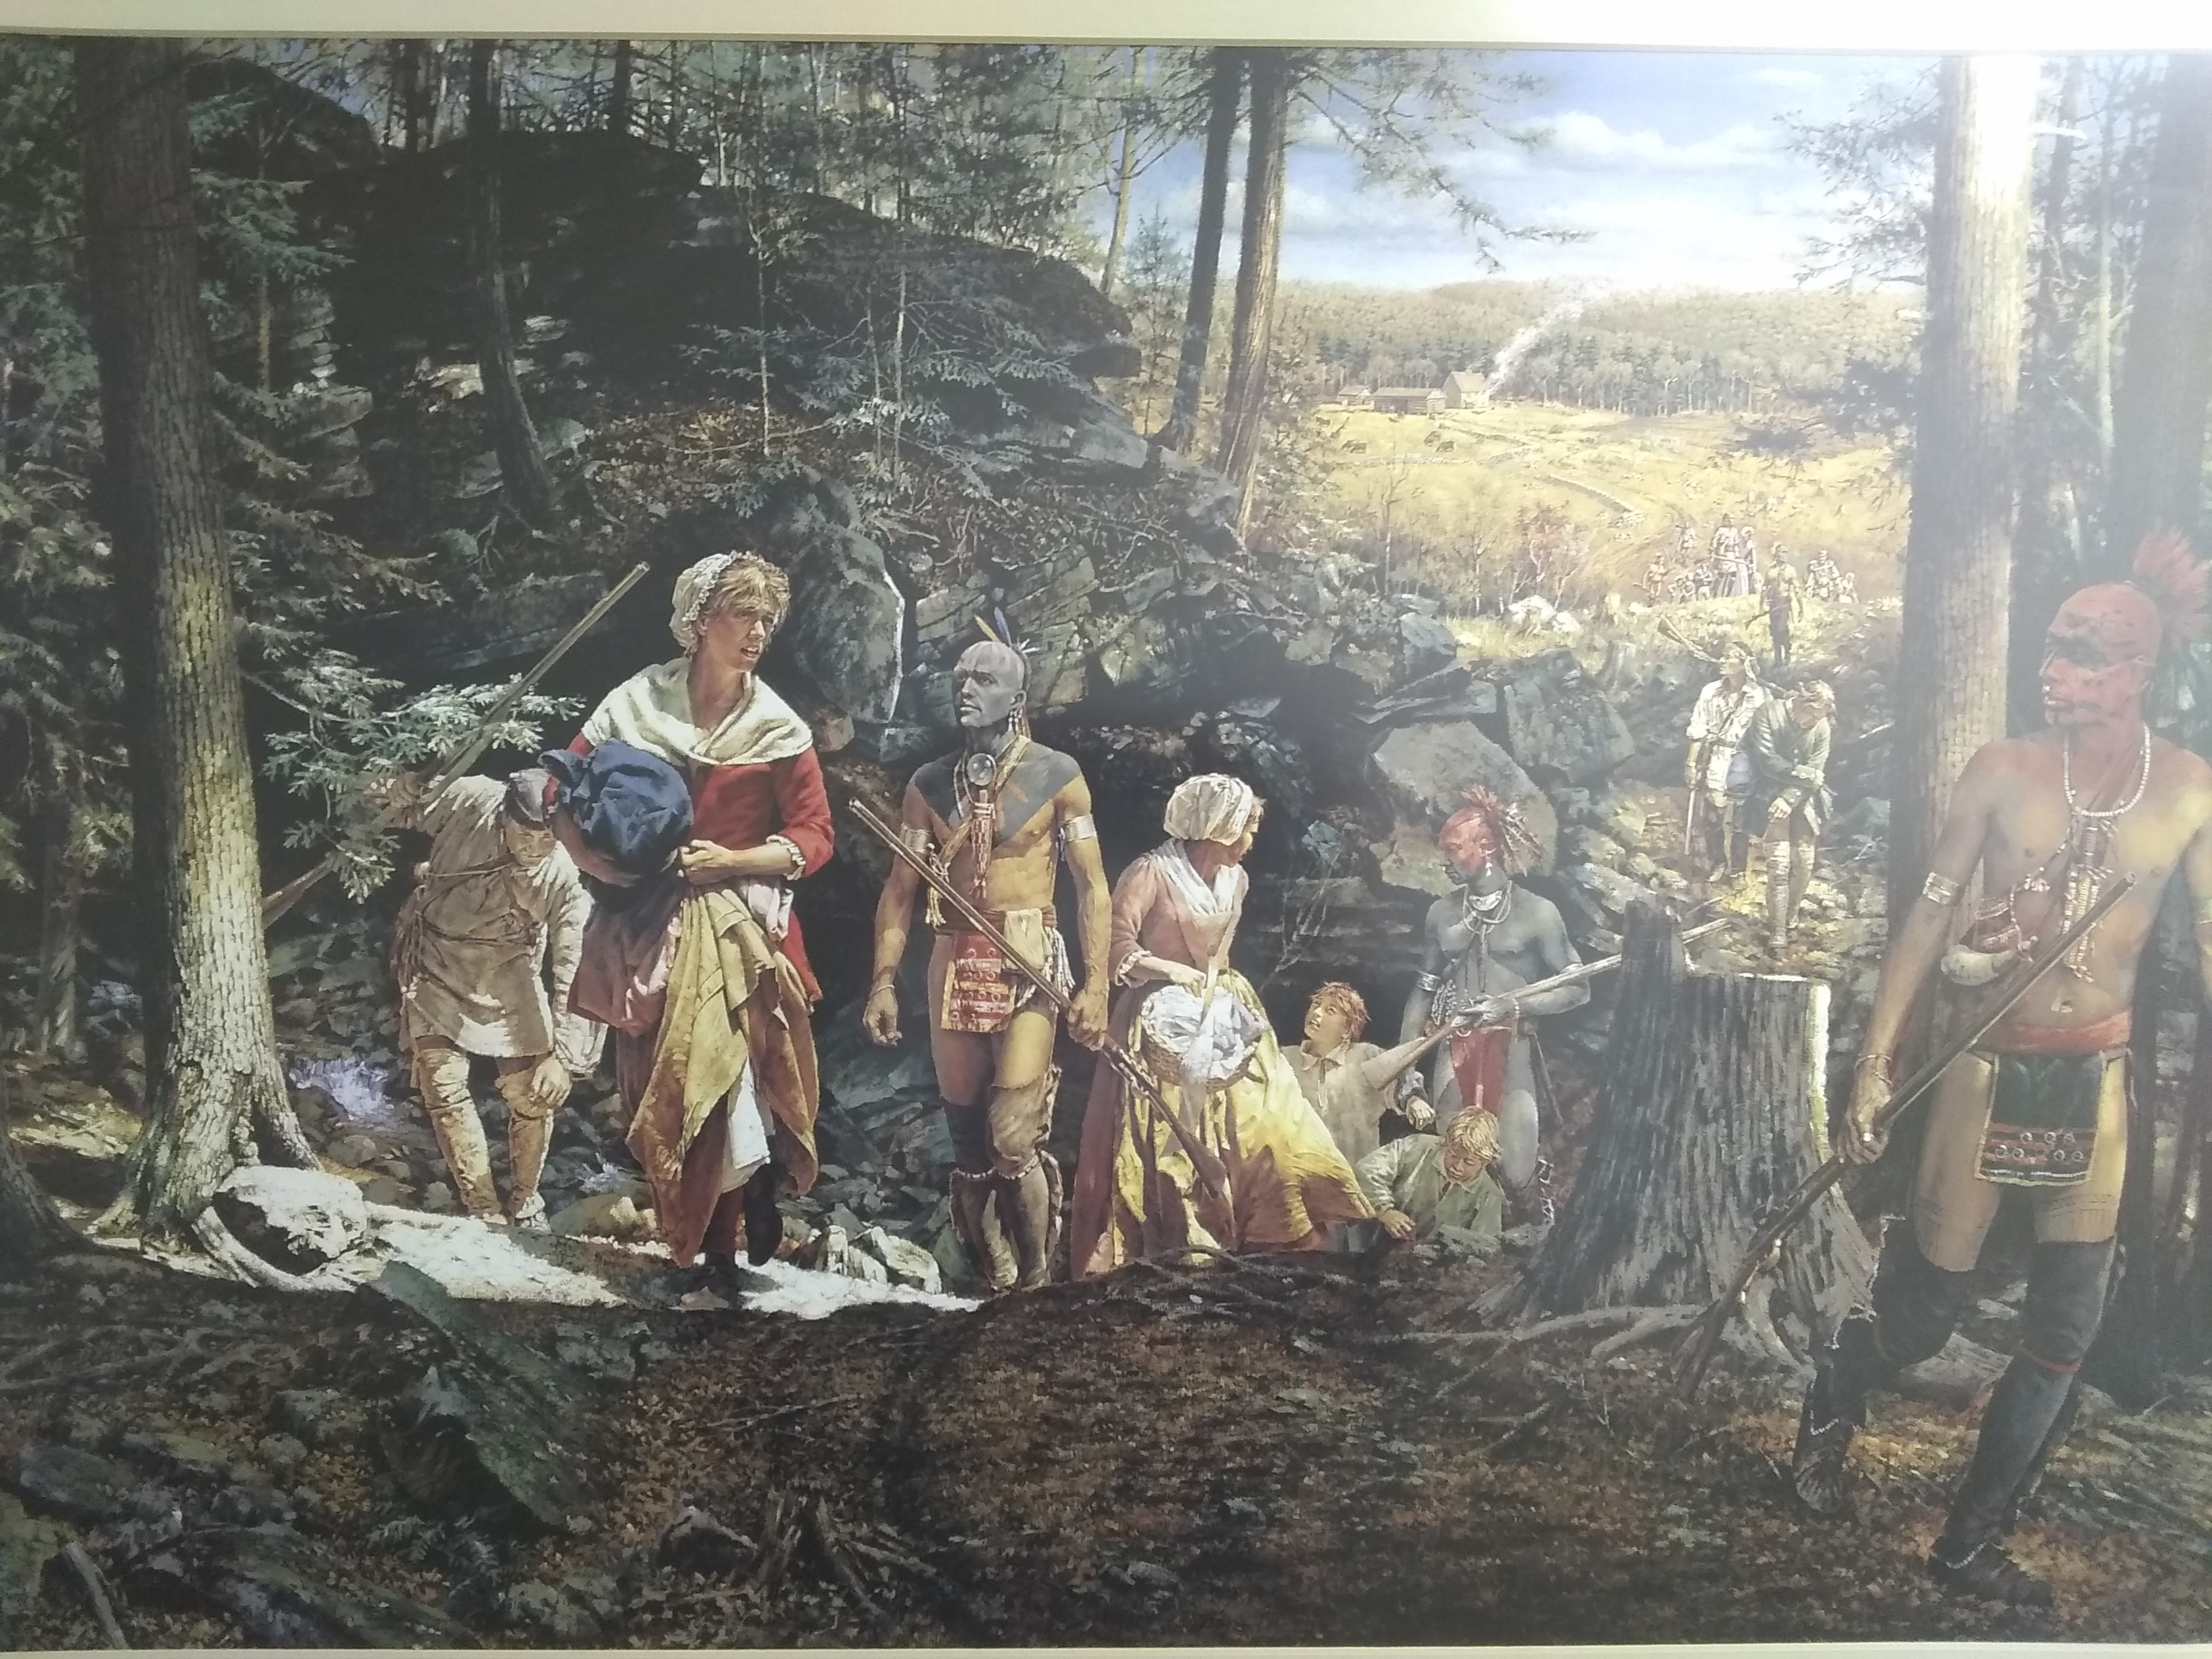 Painting that depicts the Raid and Abduction